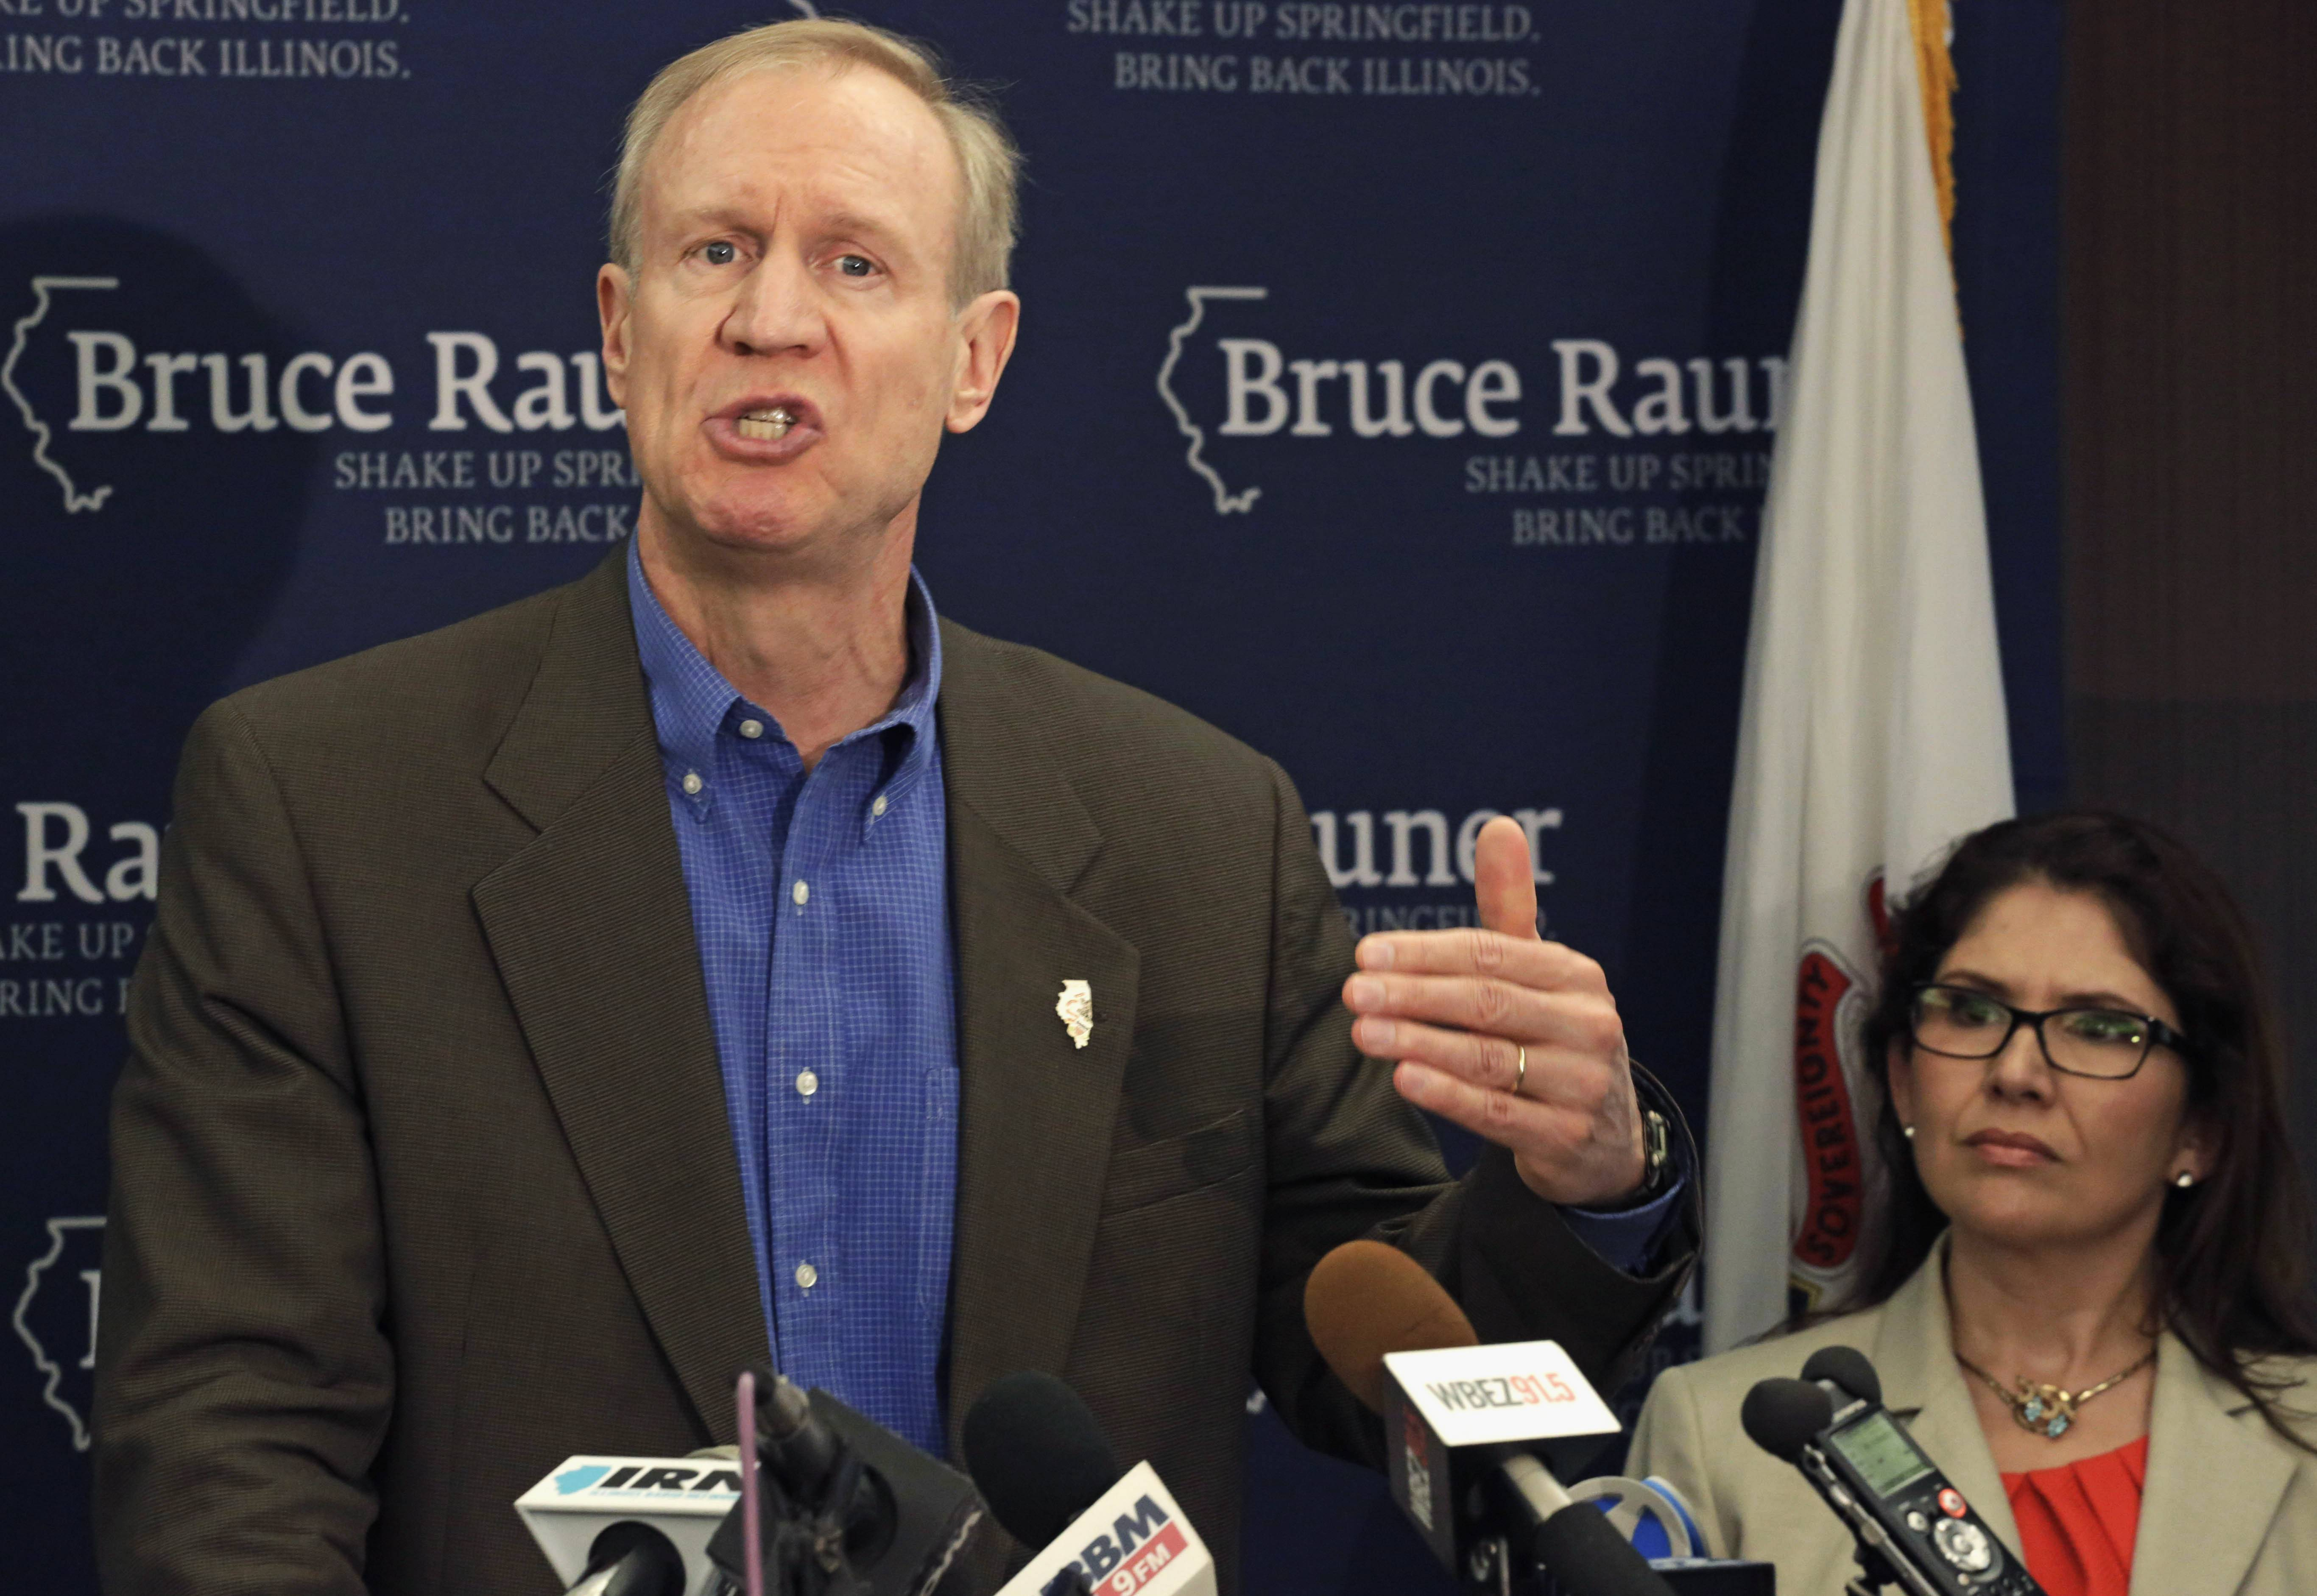 In this June 12 photo, Illinois GOP gubernatorial candidate Bruce Rauner speaks at a news conference accompanied by his running mate Evelyn Sanguinetti in Chicago. Democrats ripped Rauner Monday on new allegations a chain of long-term care homes owned by one of Rauner's former companies has faced lawsuits and state inspections because of the death and mistreatment of residents. Meanwhile, Rauner blasted Gov. Pat Quinn for his failures in the black community.